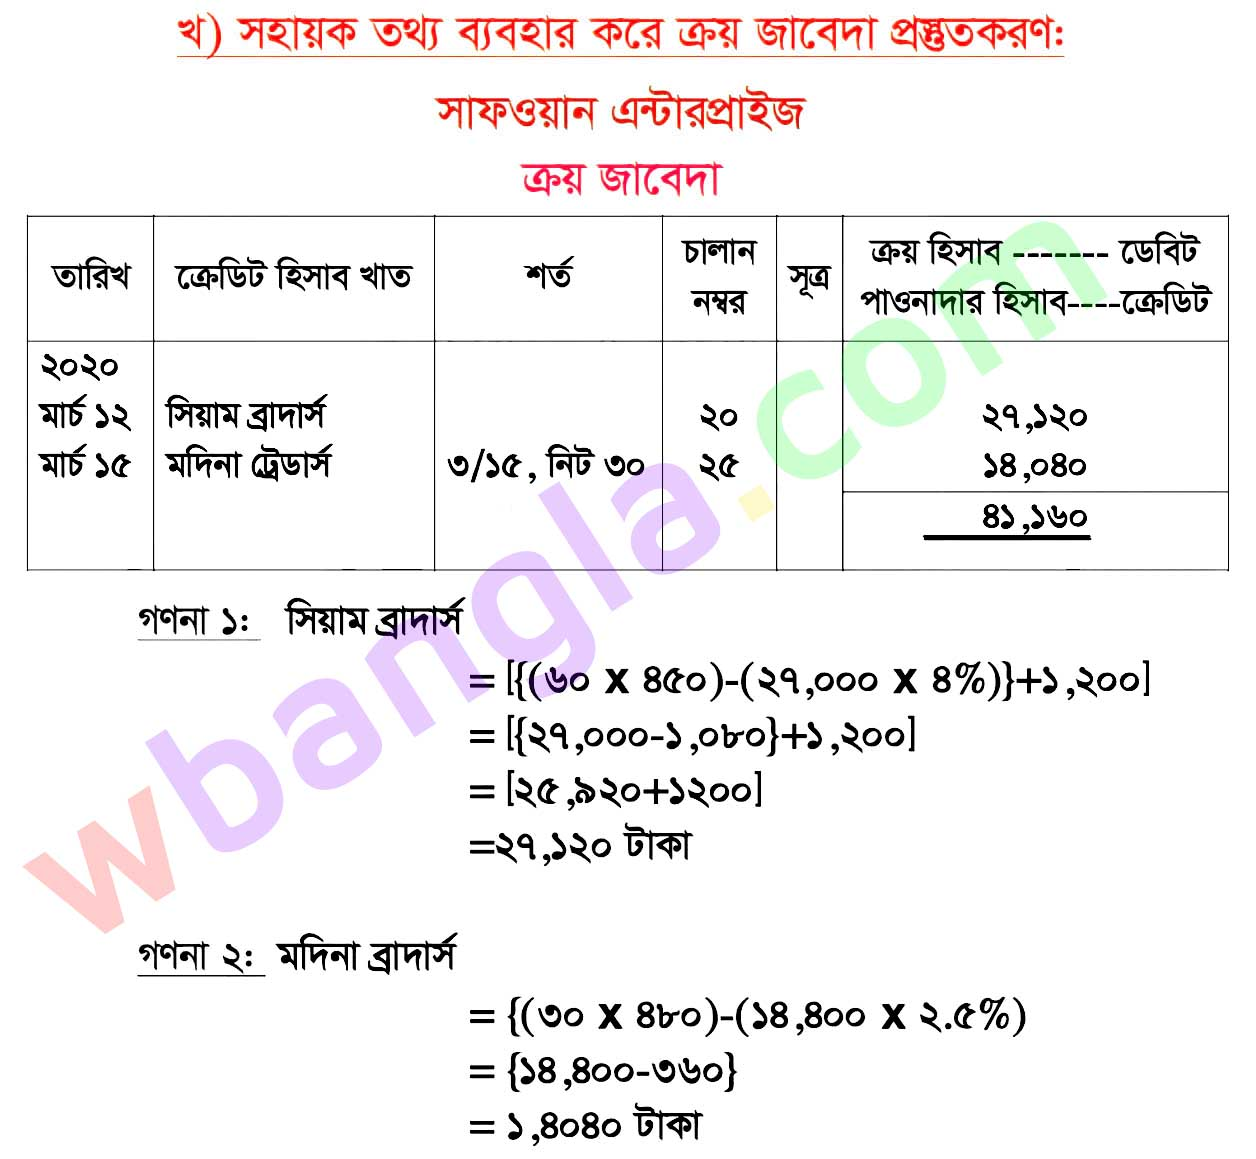 ssc accounting answer 2